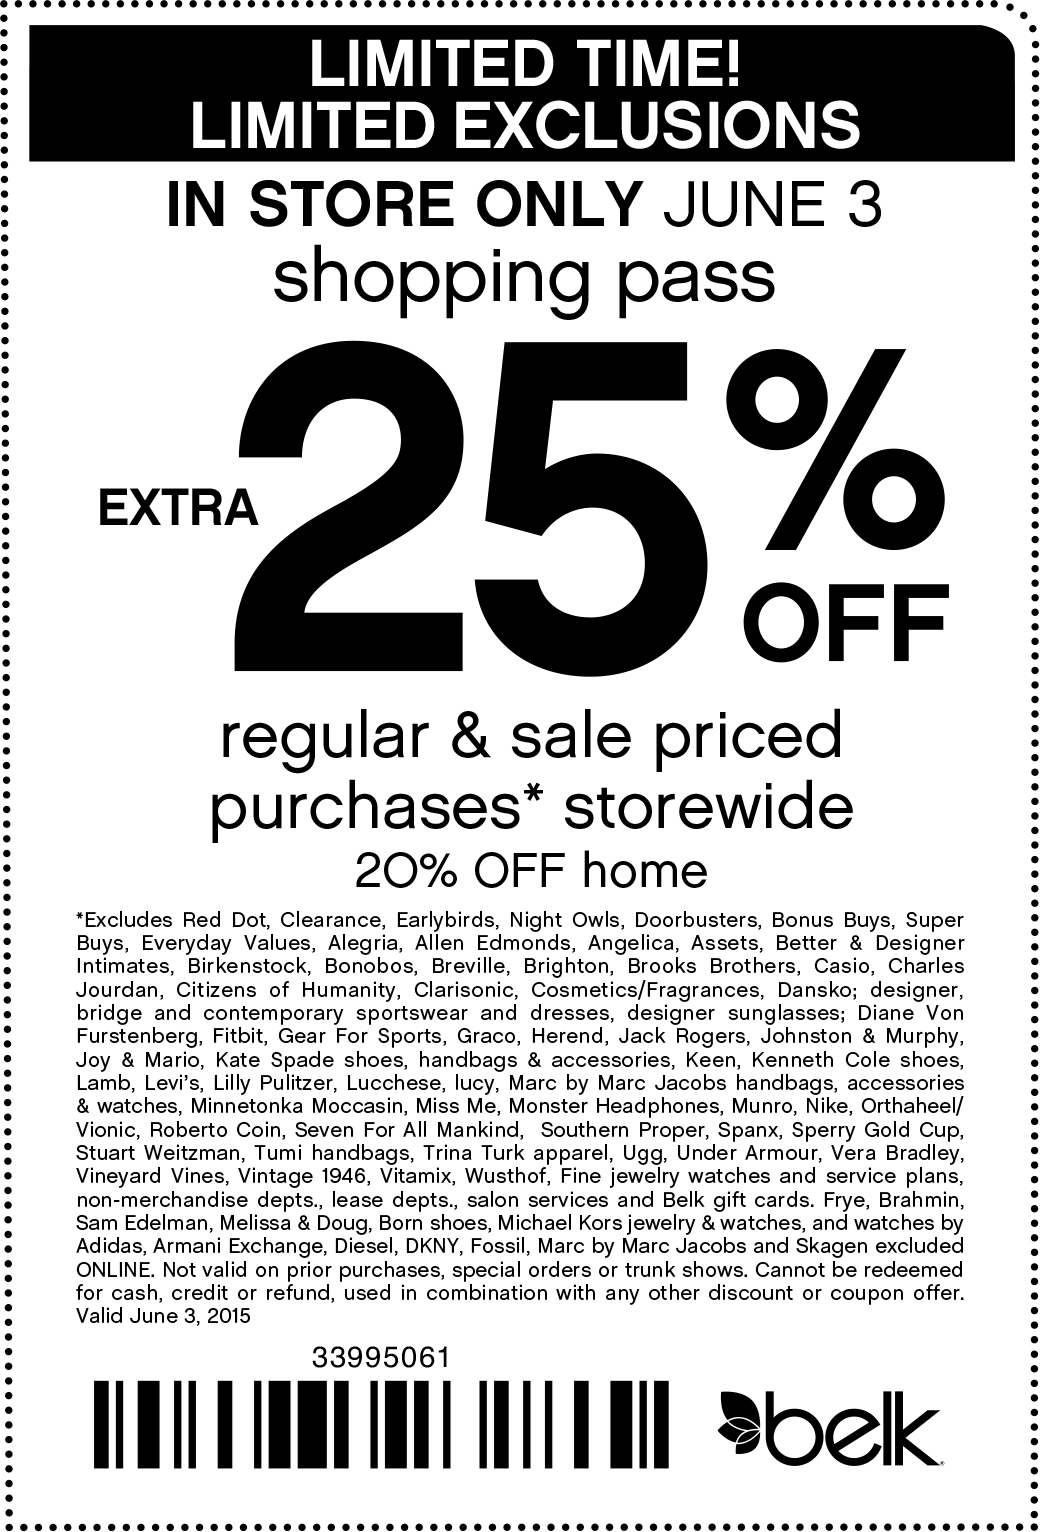 Belk Coupon March 2018 Extra 25% off today at Belk